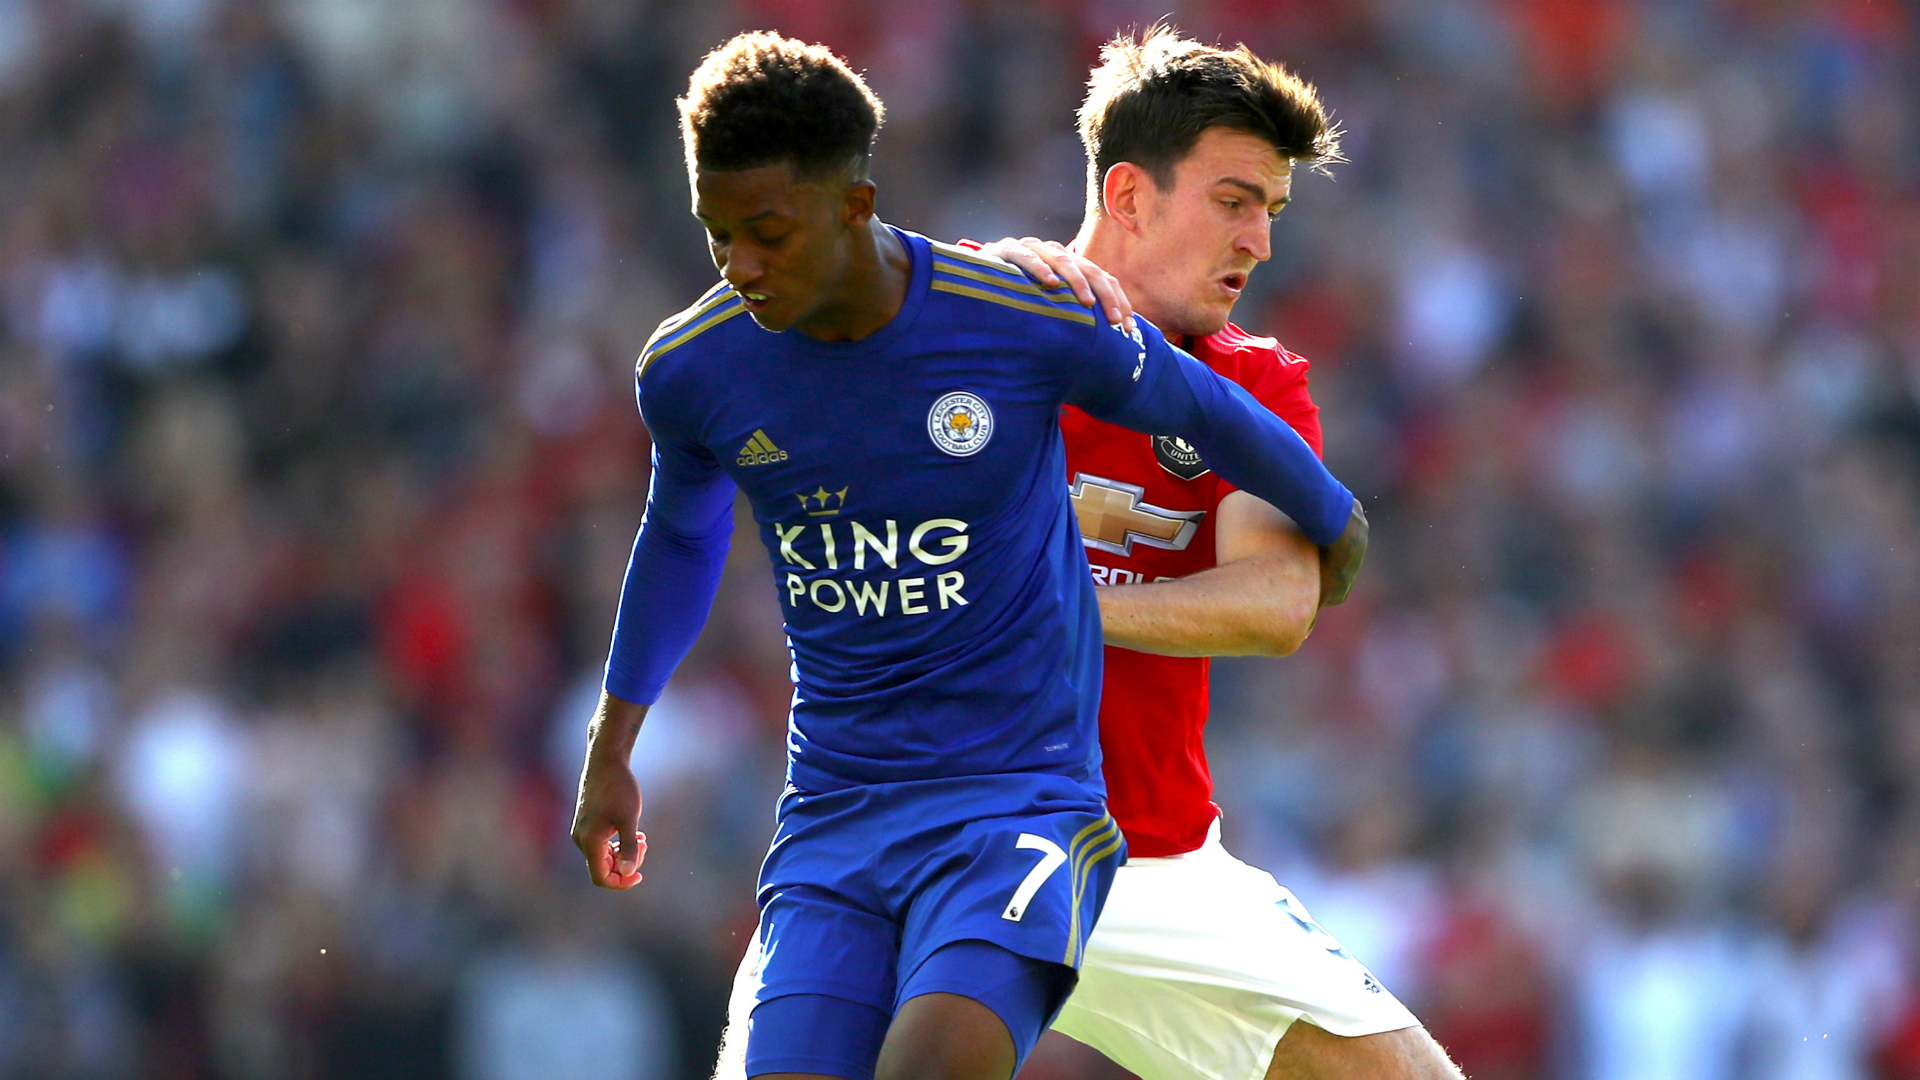 Manchester United 1-0 Leicester City: Rashford on the spot to get Red Devils winning again